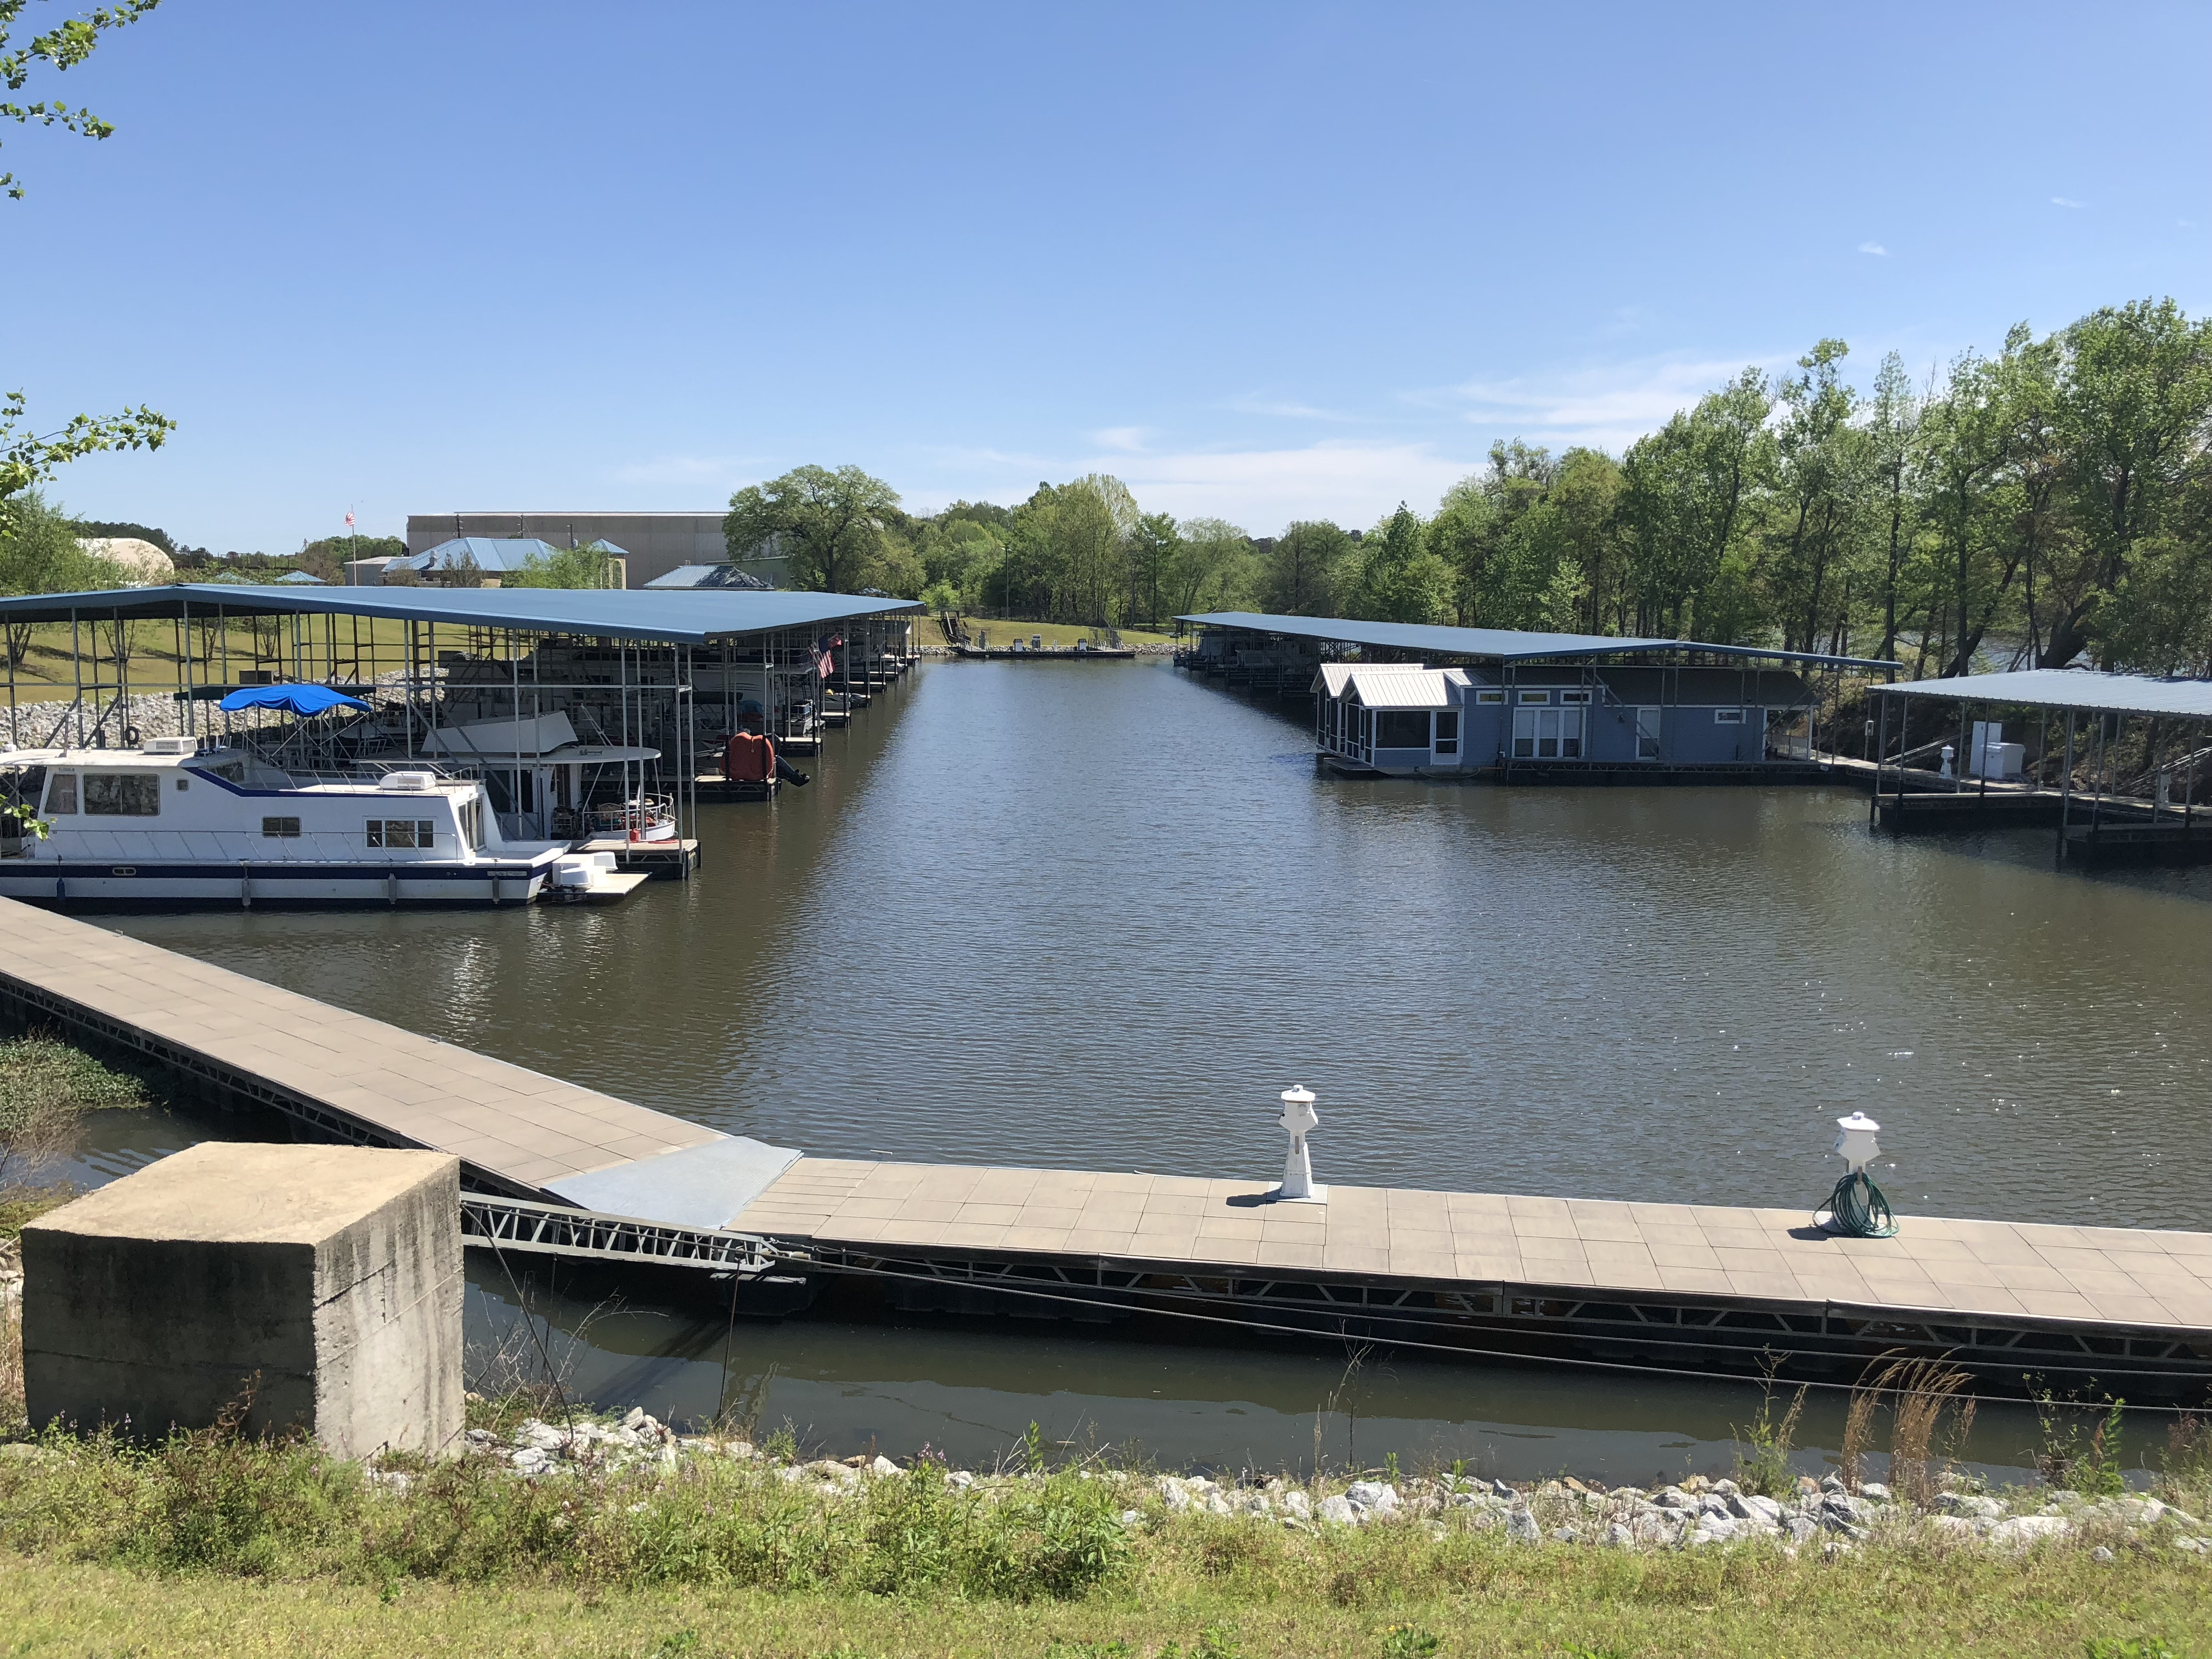 View of Boat Slips from Back Side of Property